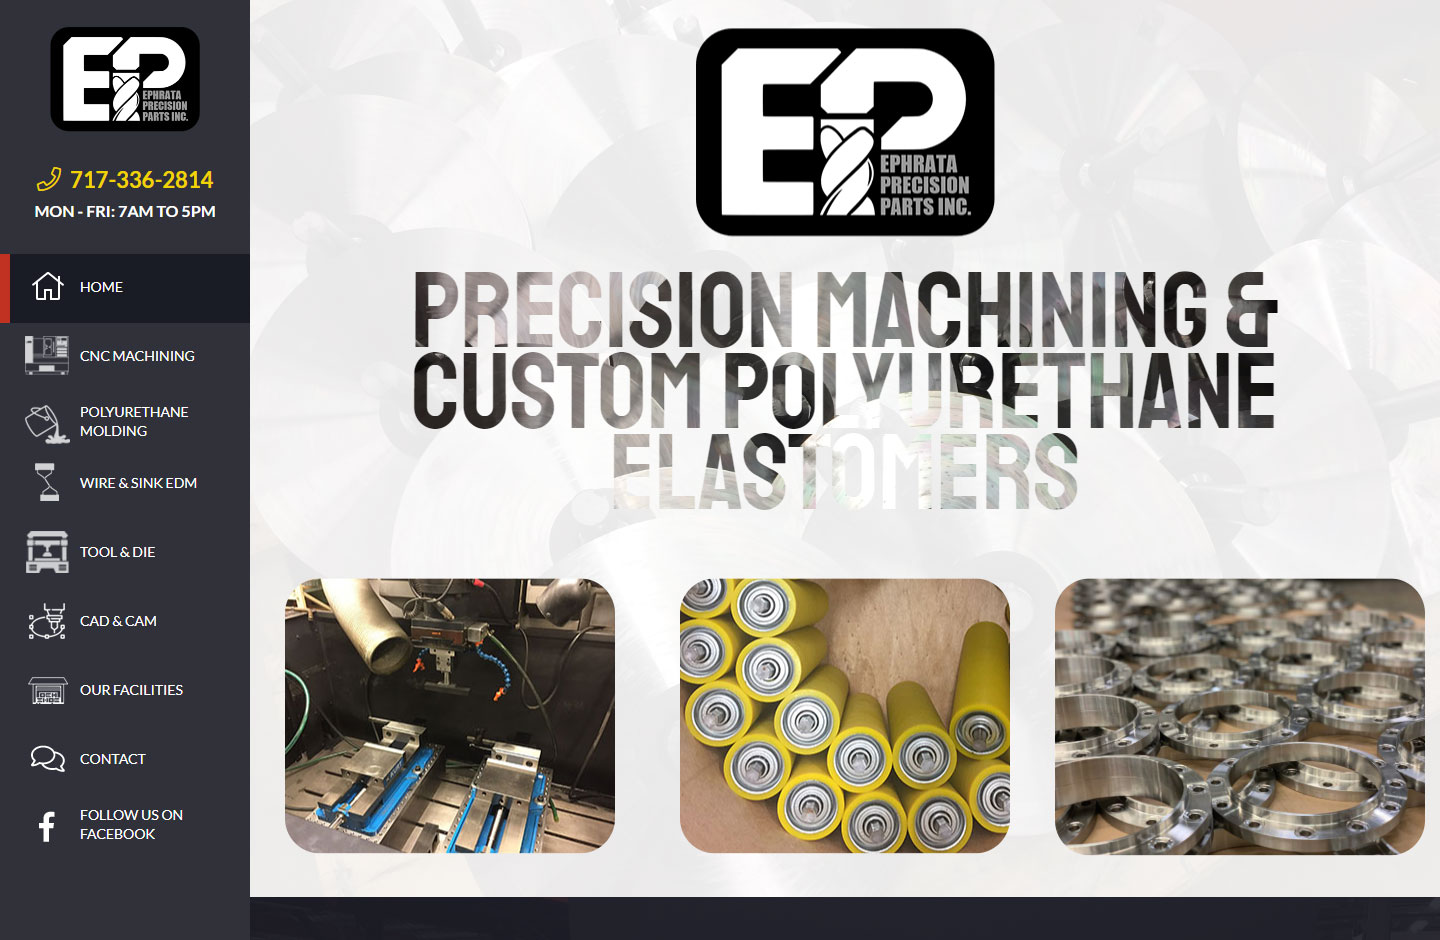 Ephrata Precision Parts